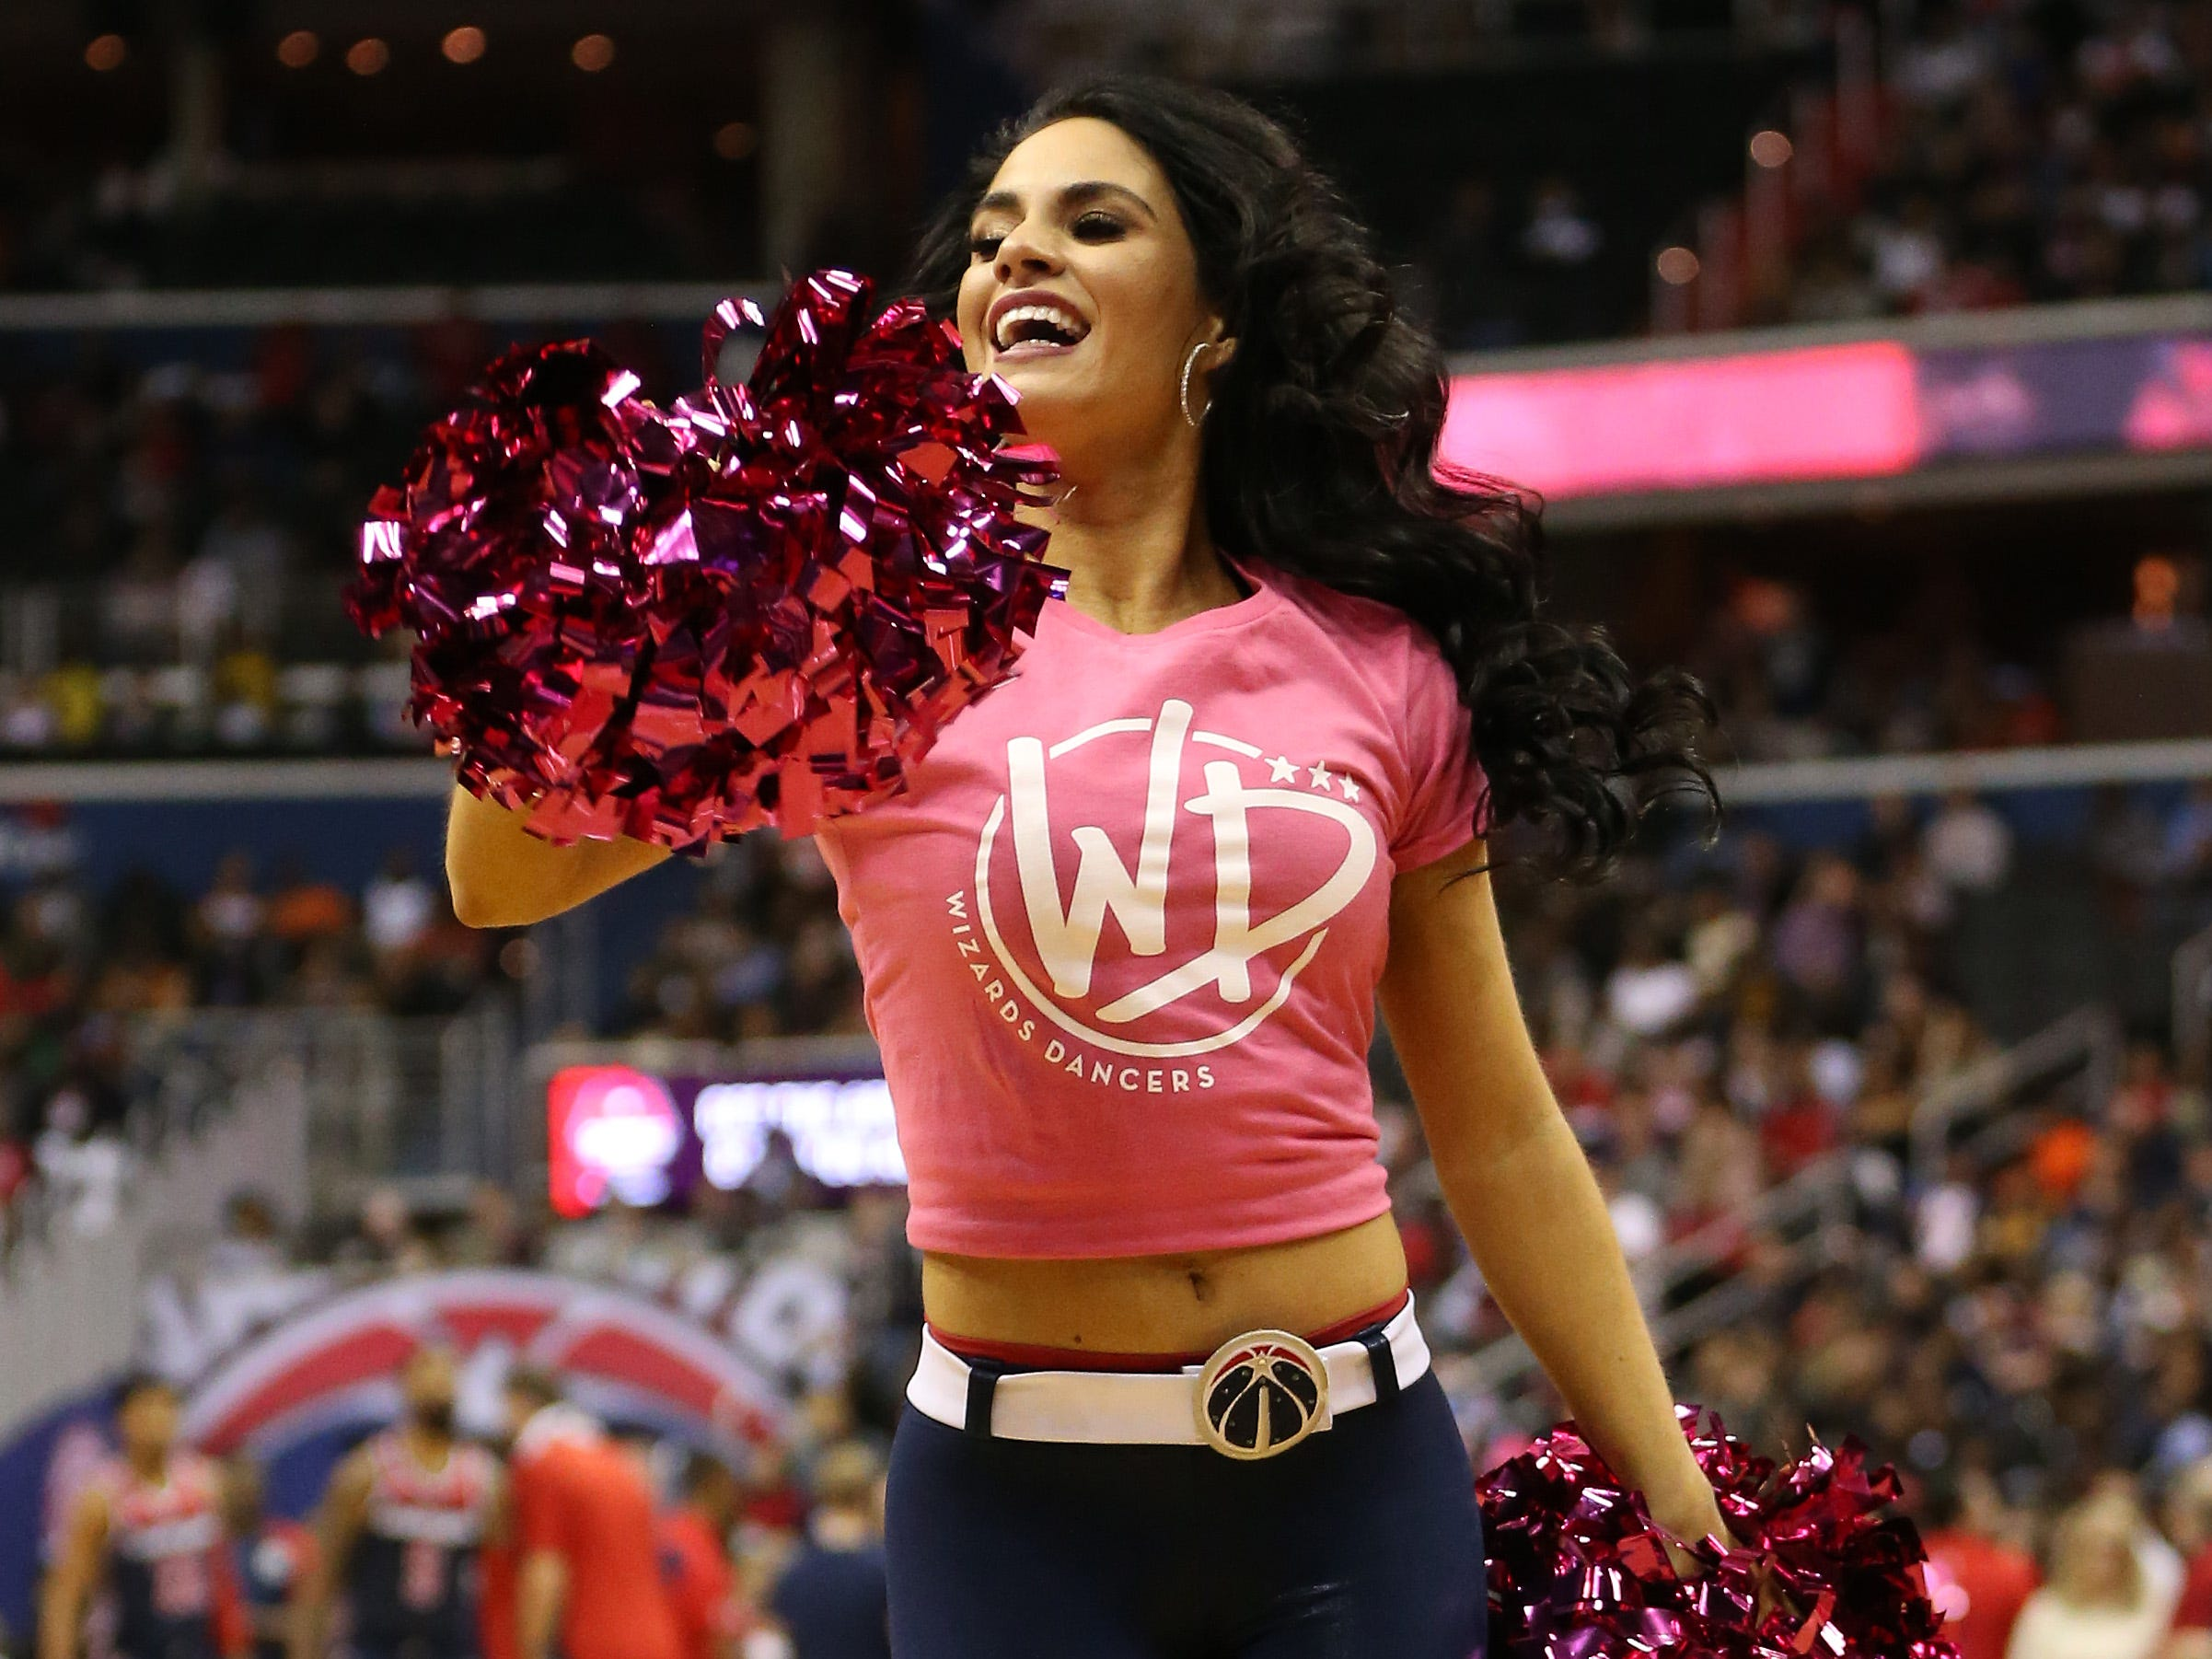 Oct. 20: A member of the Washington Wizards dance team dances on the court during a timeout against the Toronto Raptors in the fourth quarter at Capital One Arena.